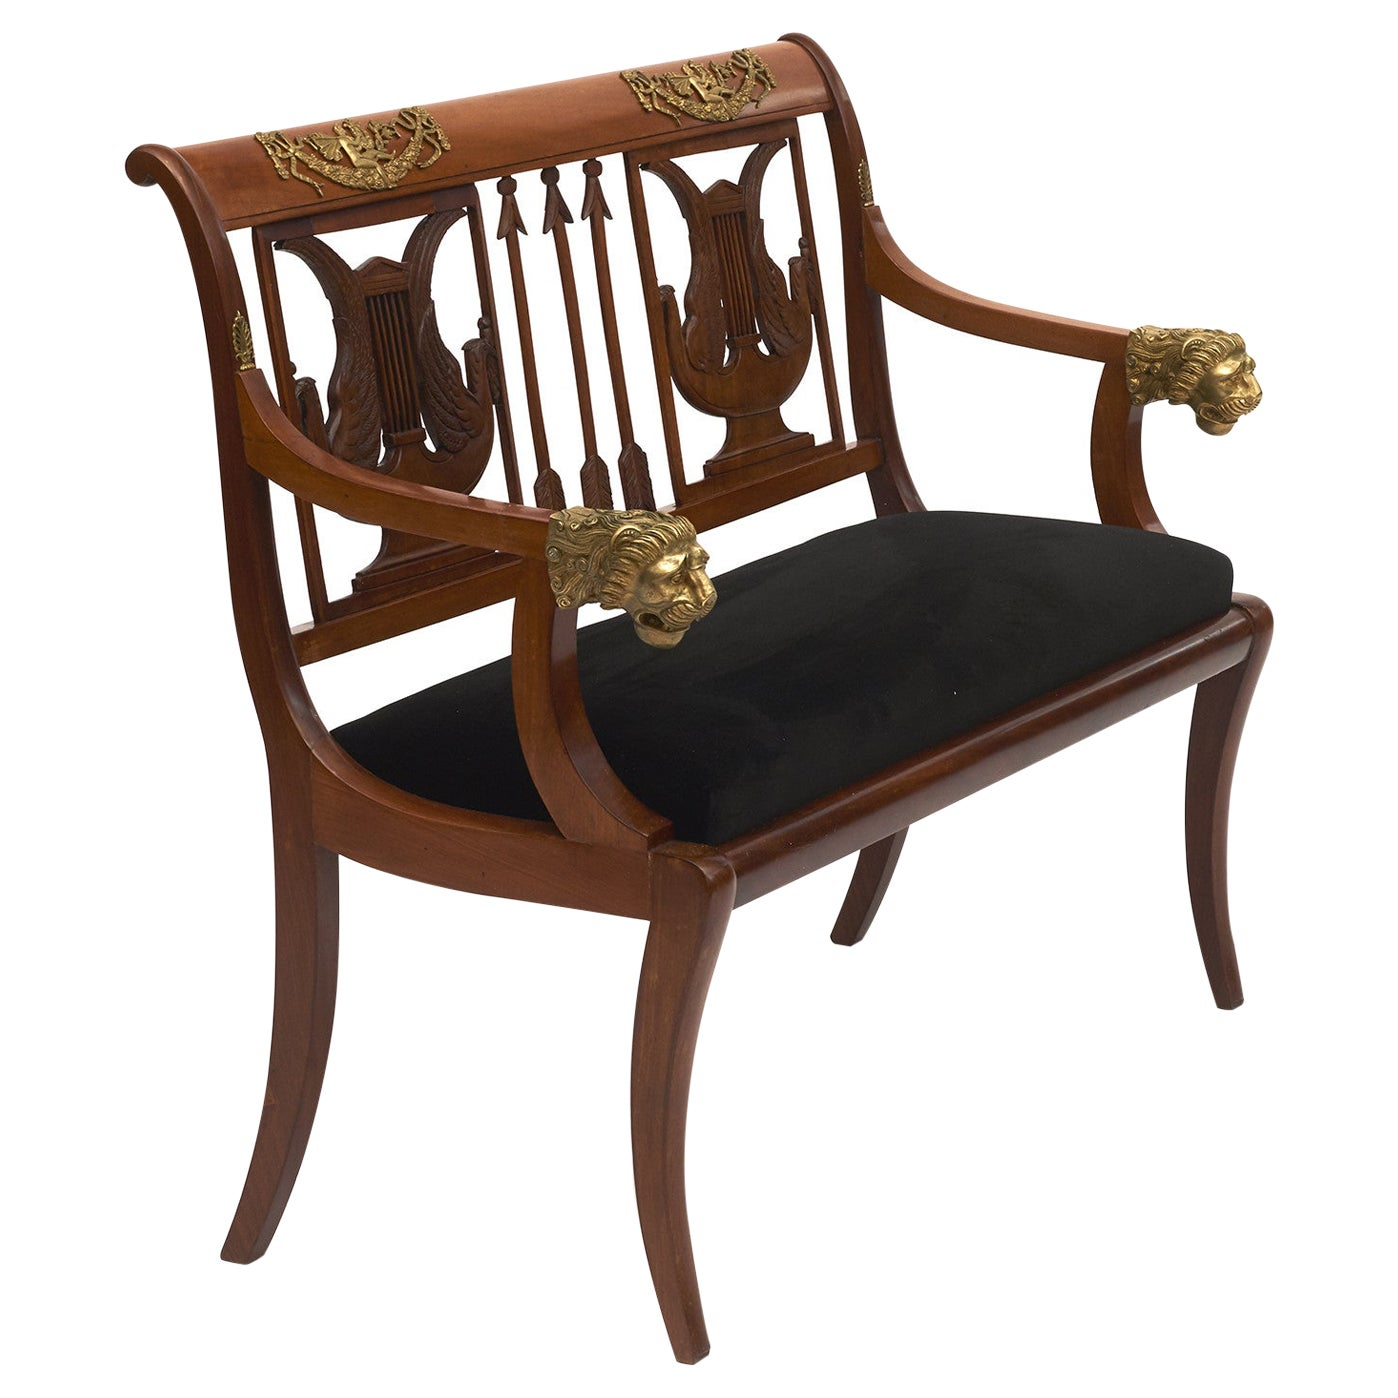 Early 19th Century Russian Empire Bench